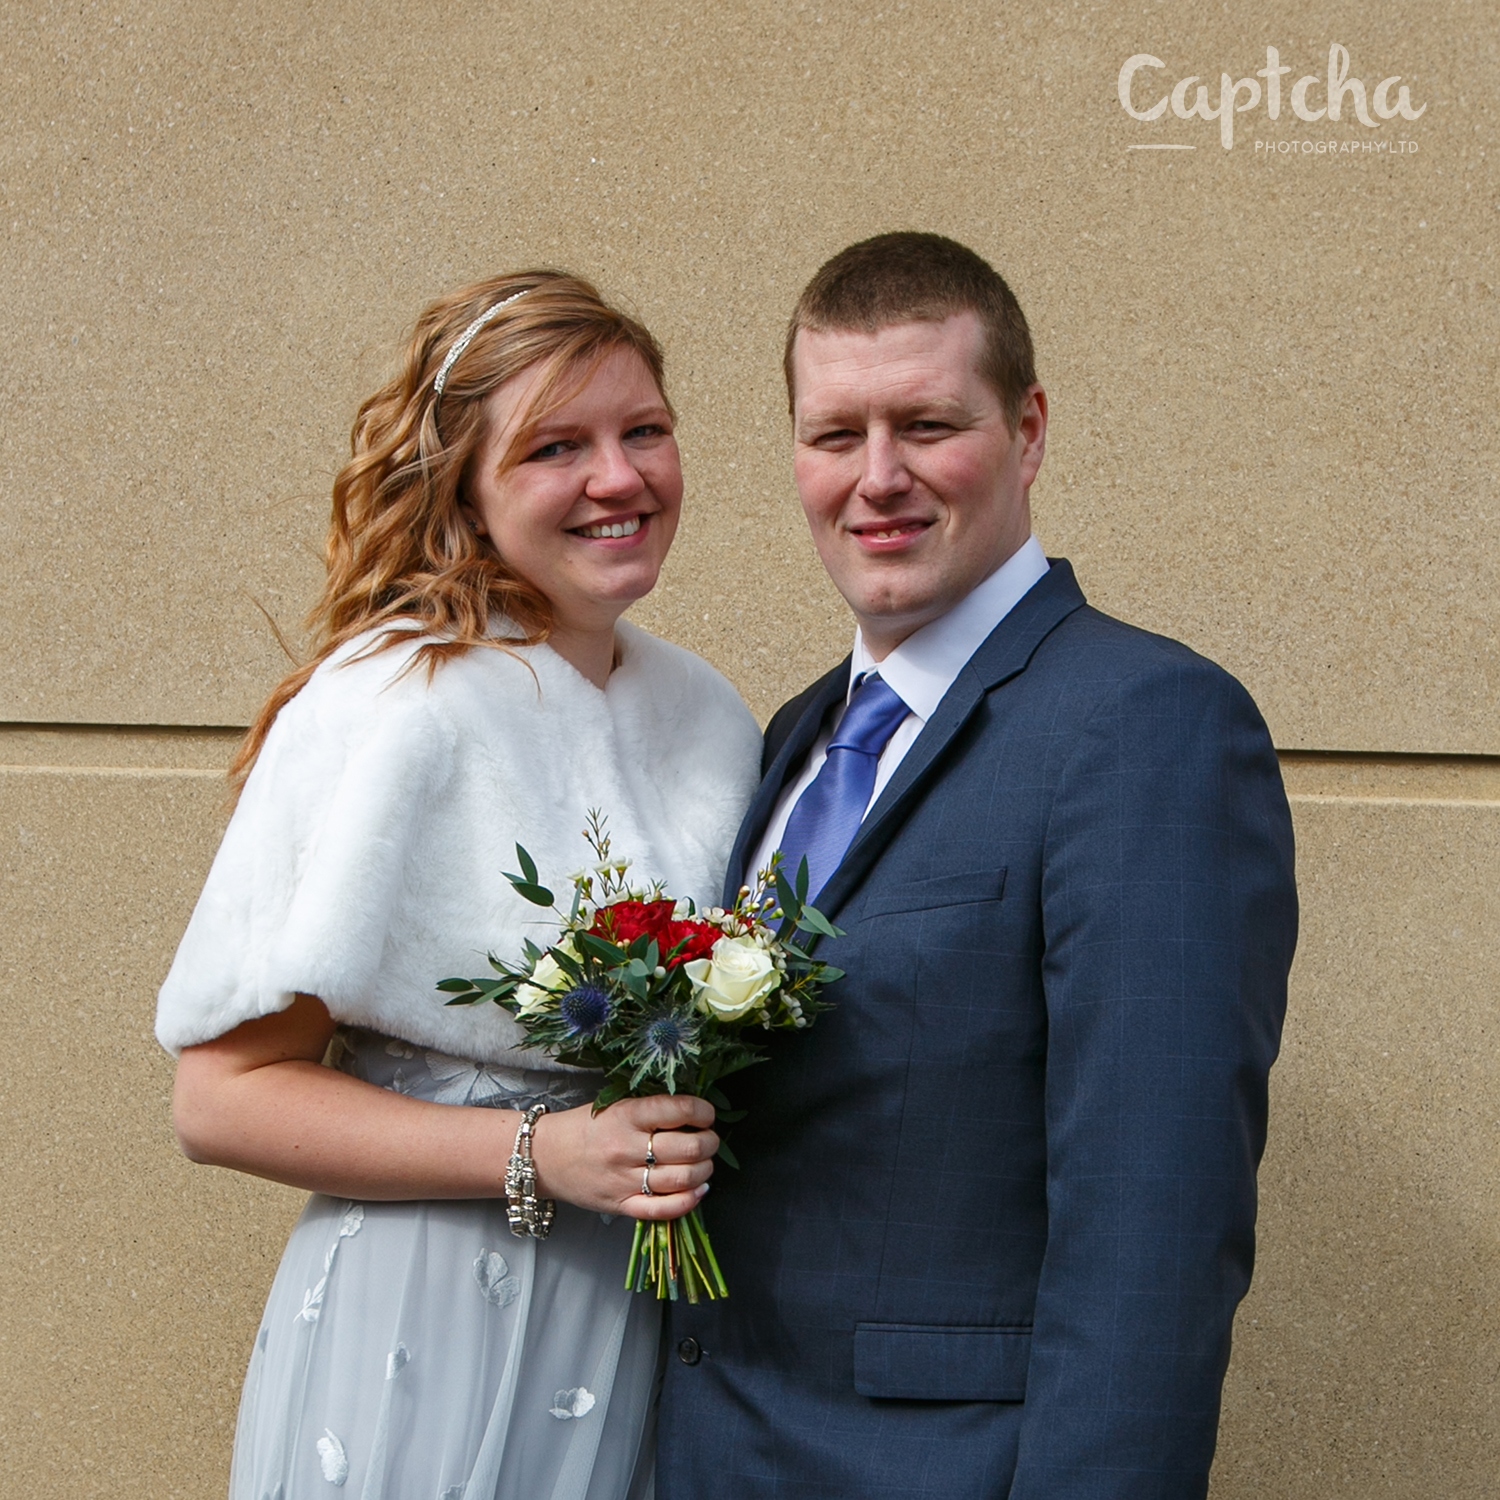 The 20 Year Wedding March: Captcha Photography